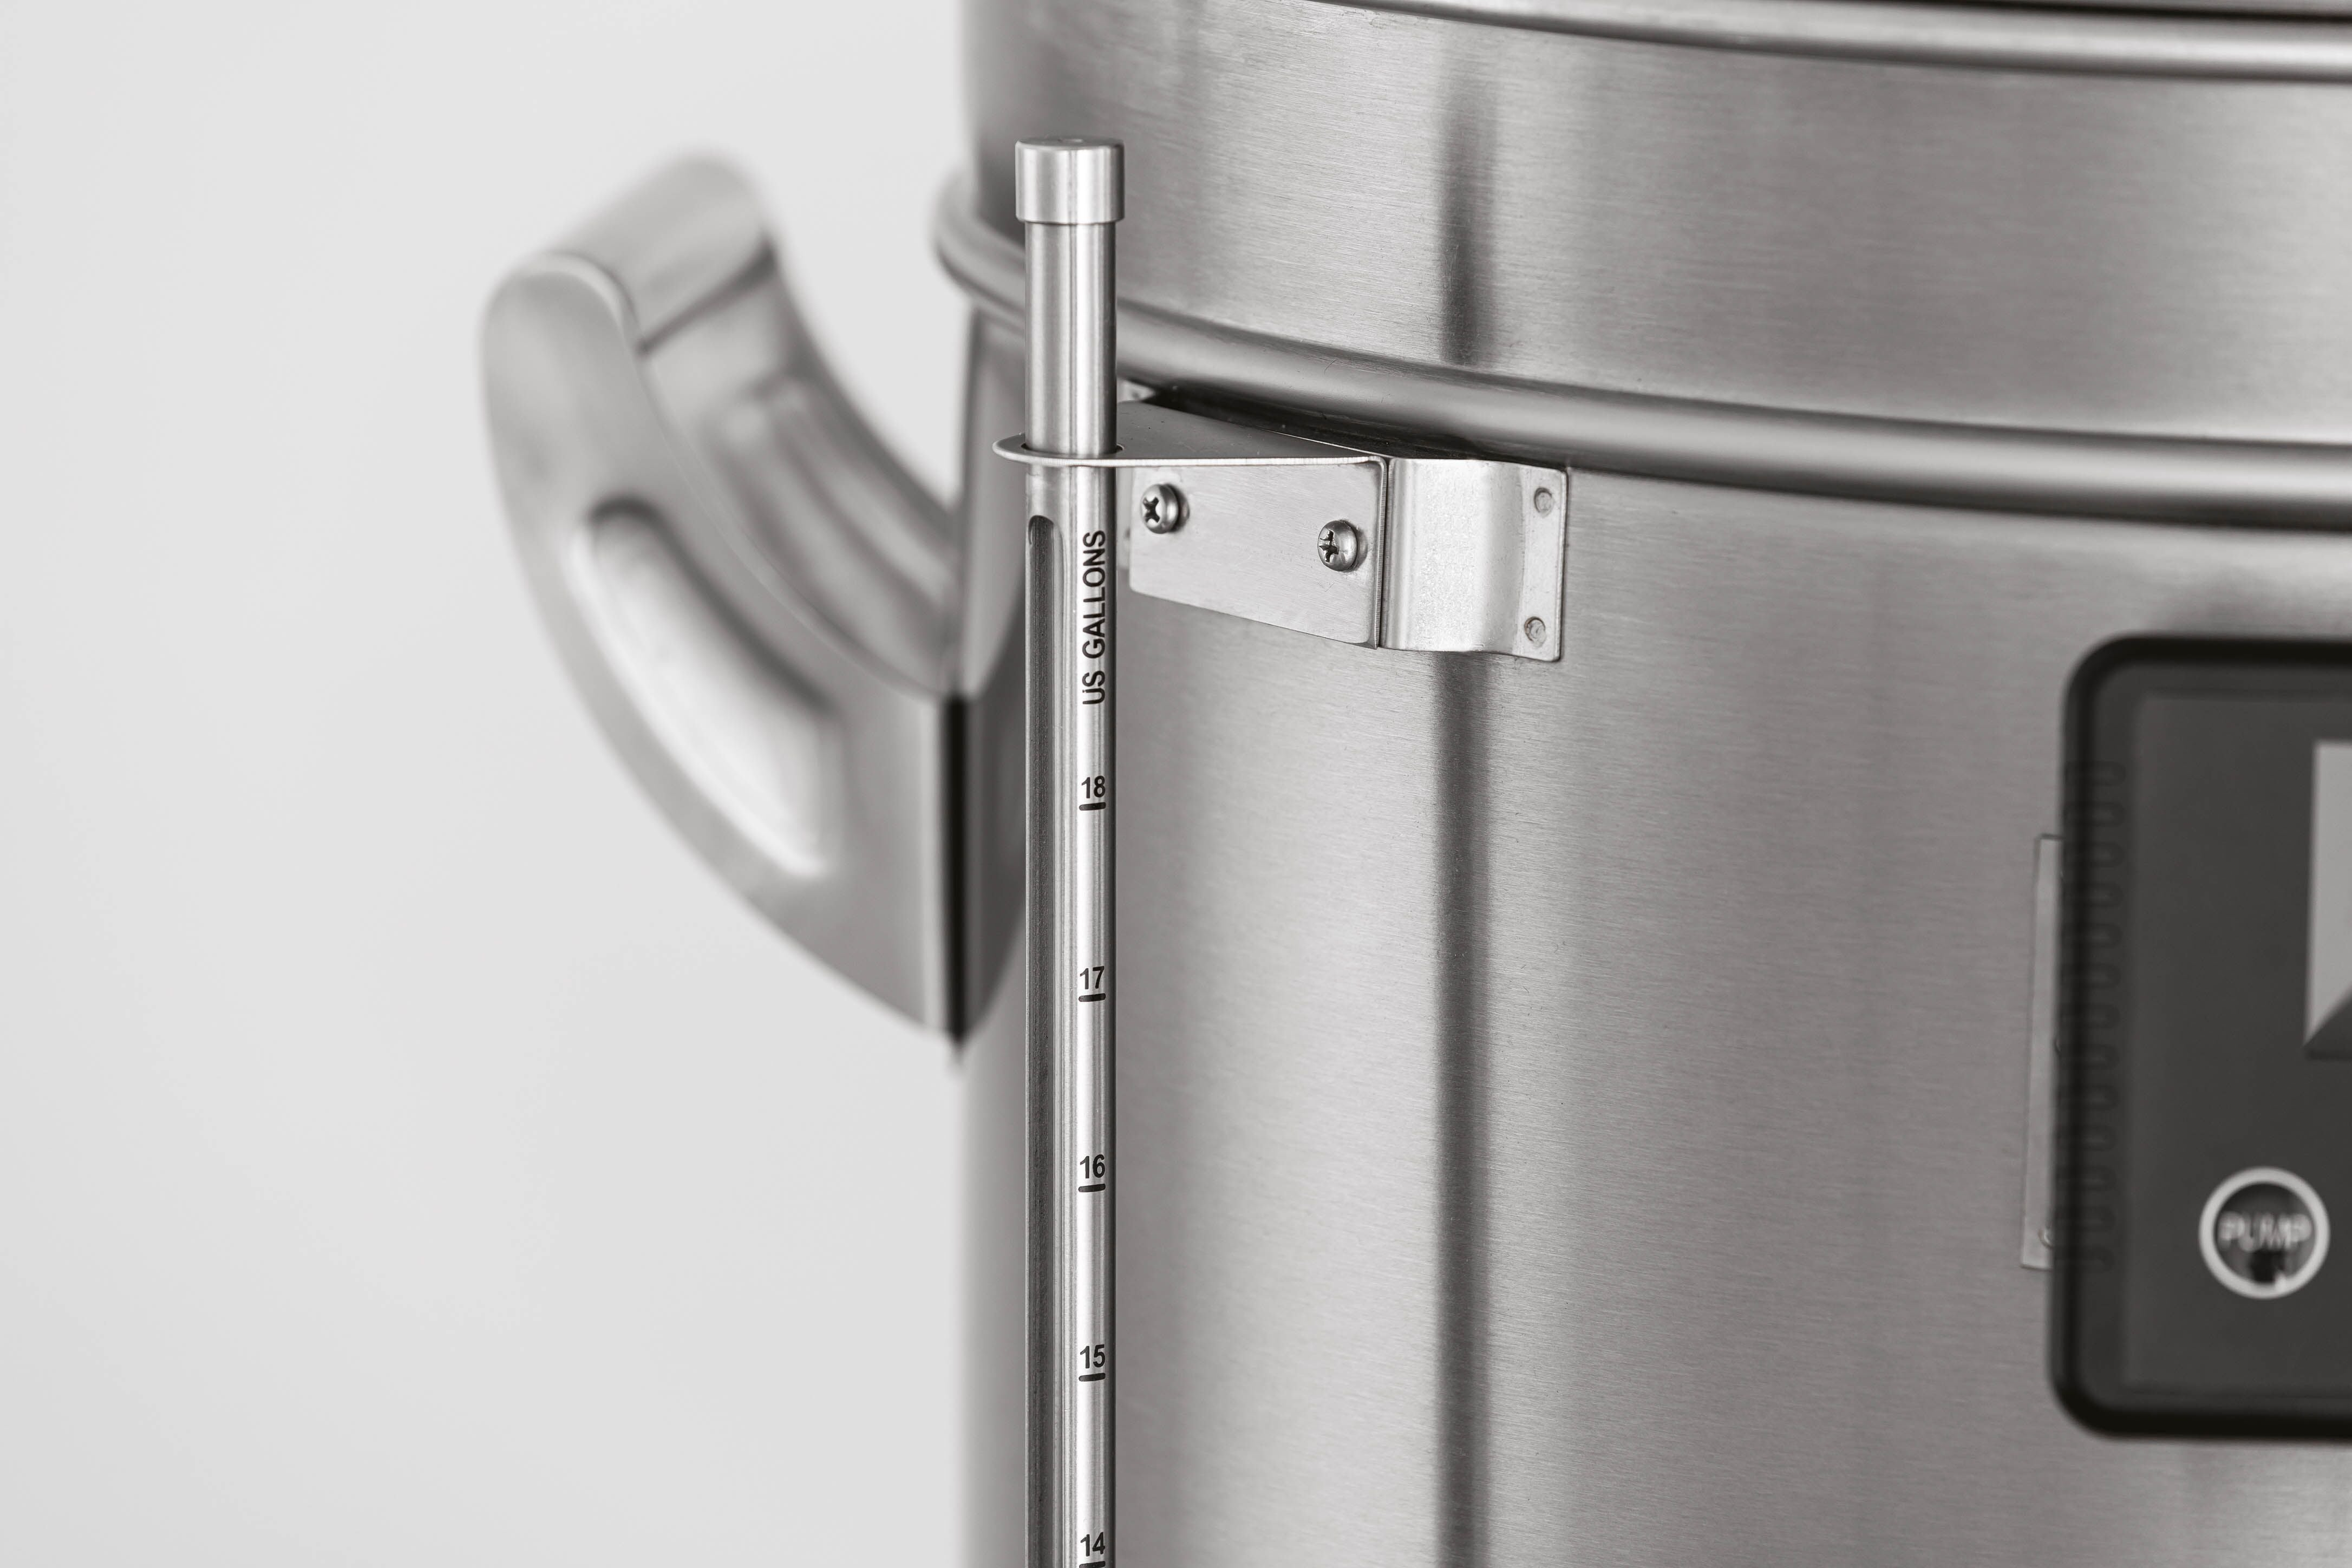 Grainfather G70 (ordered in)